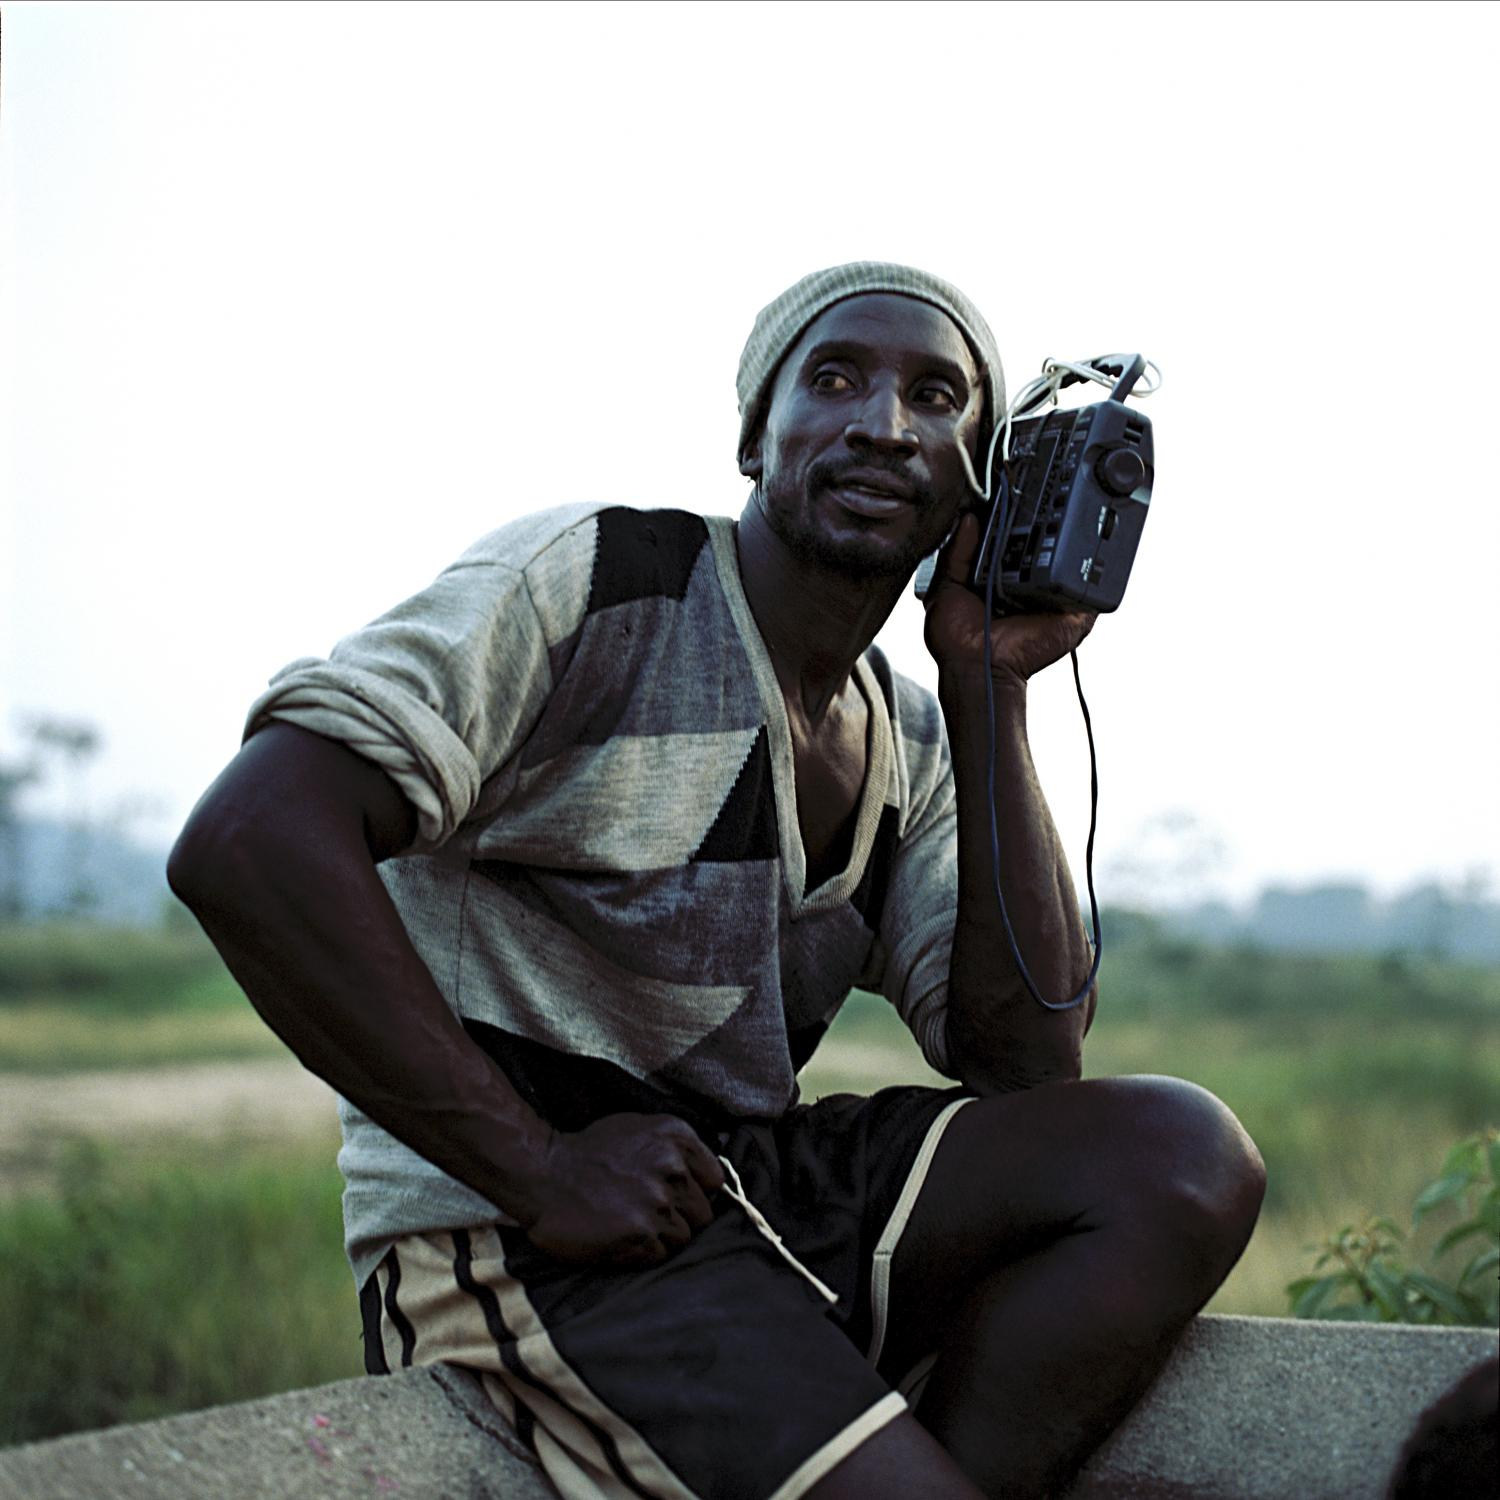 Miner listens to the radio while watching a soccer match at Vila Canopus. The village used to be the workers camp for a deactivated cassiterite mine operated by the French corporation Rhodia. A small community of miners lives in the infrastructure left behind by the company, making a living from mining the large deposits of rejected material in search of any leftover minerals